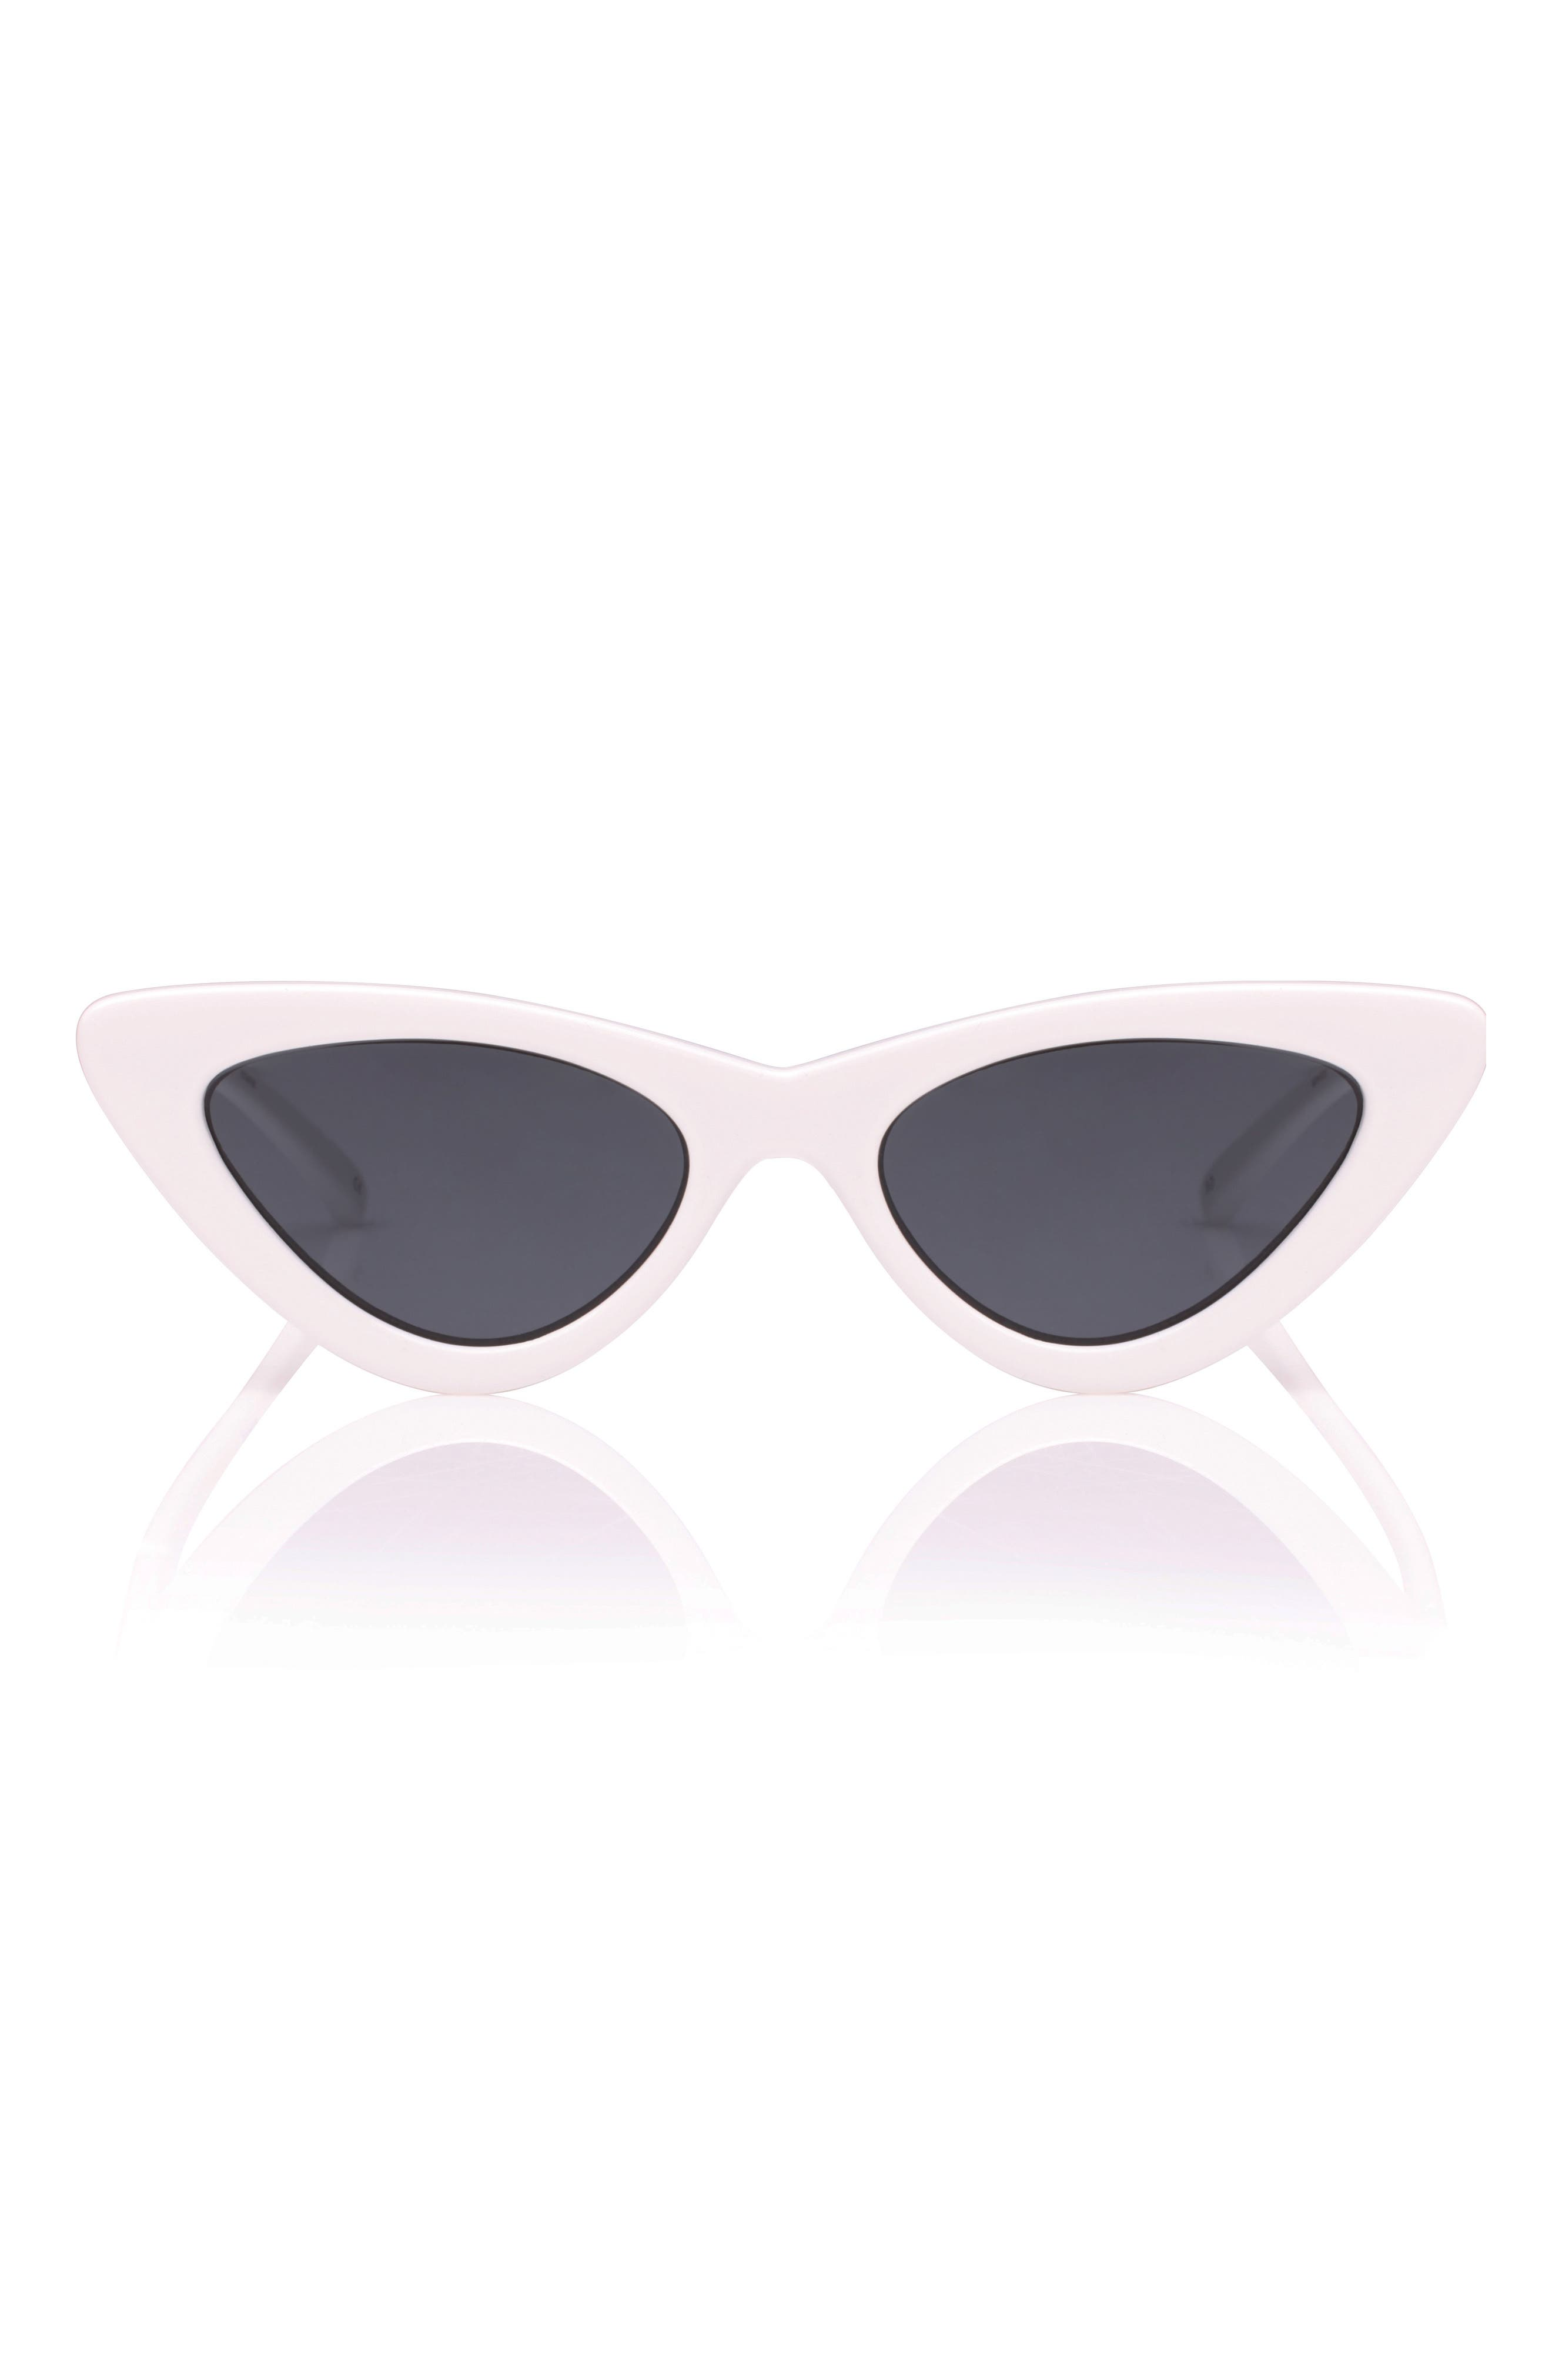 Alternate Image 1 Selected - Le Specs x Adam Selman Last Lolita 49mm Cat Eye Sunglasses